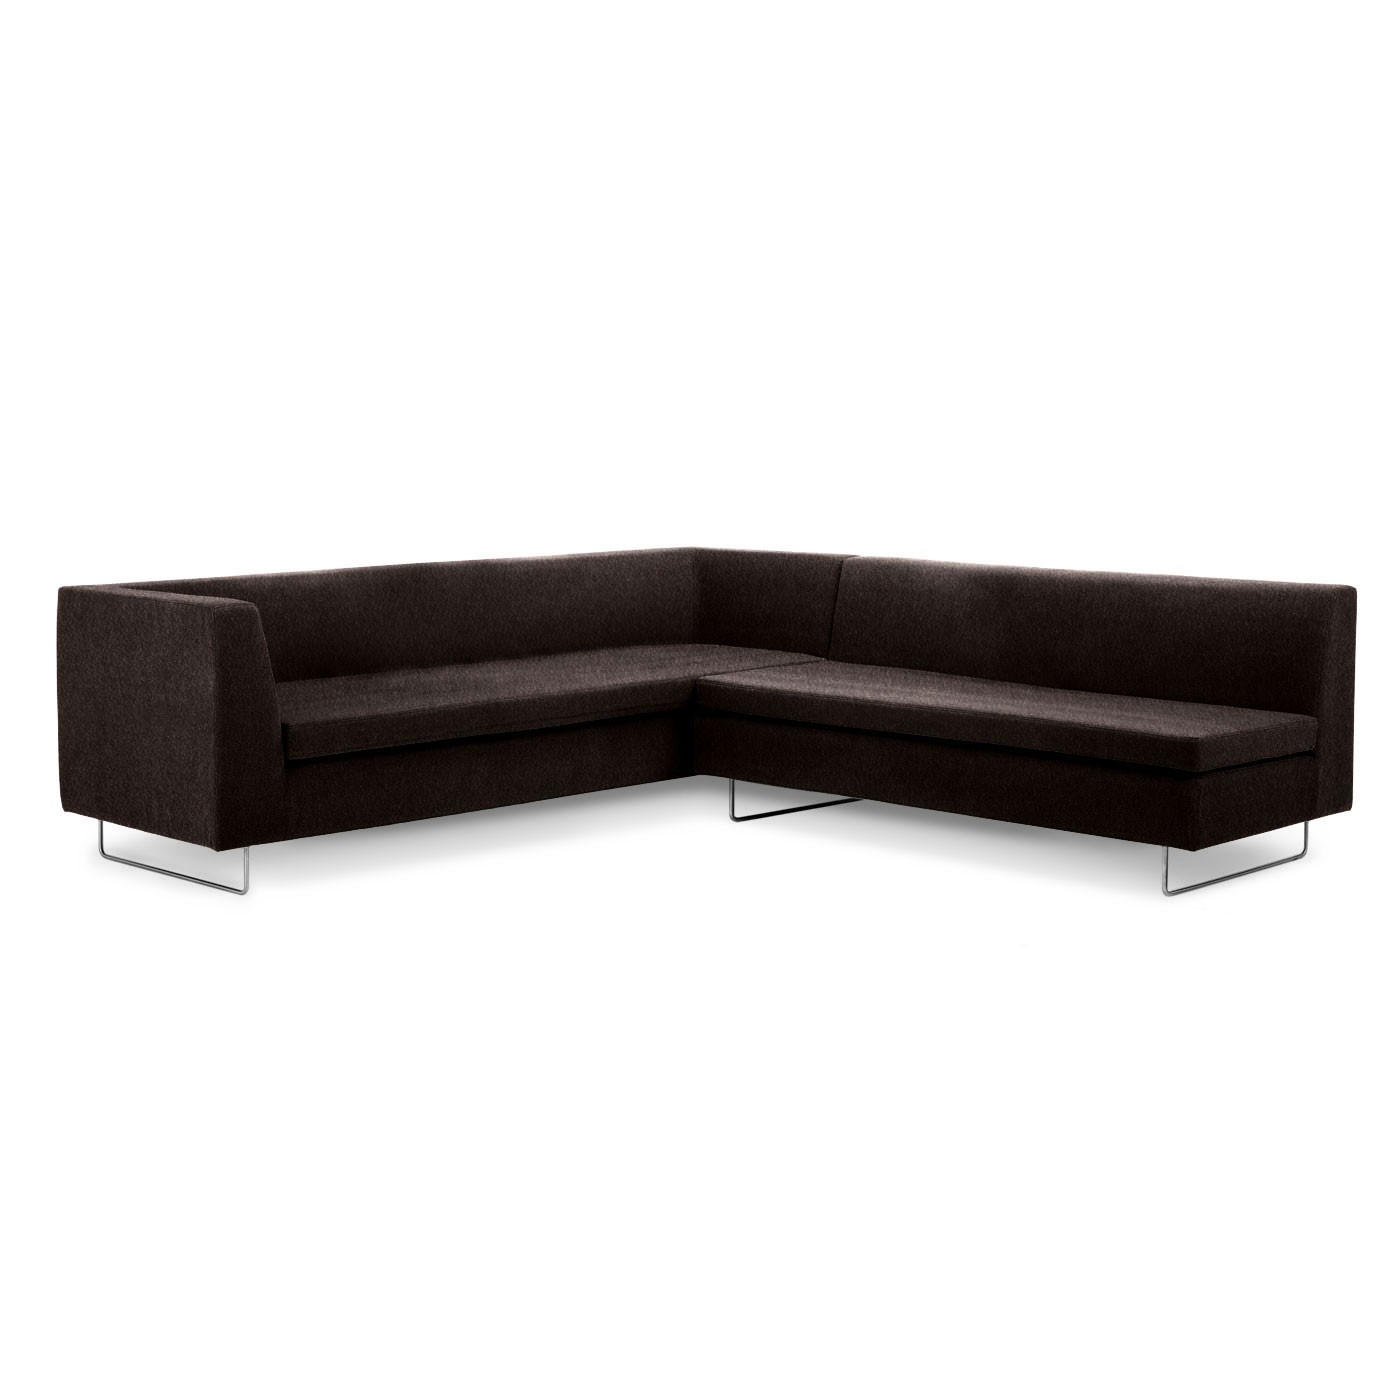 simple and elegant sectional Couches in dark brown for inspiring furniture ideas